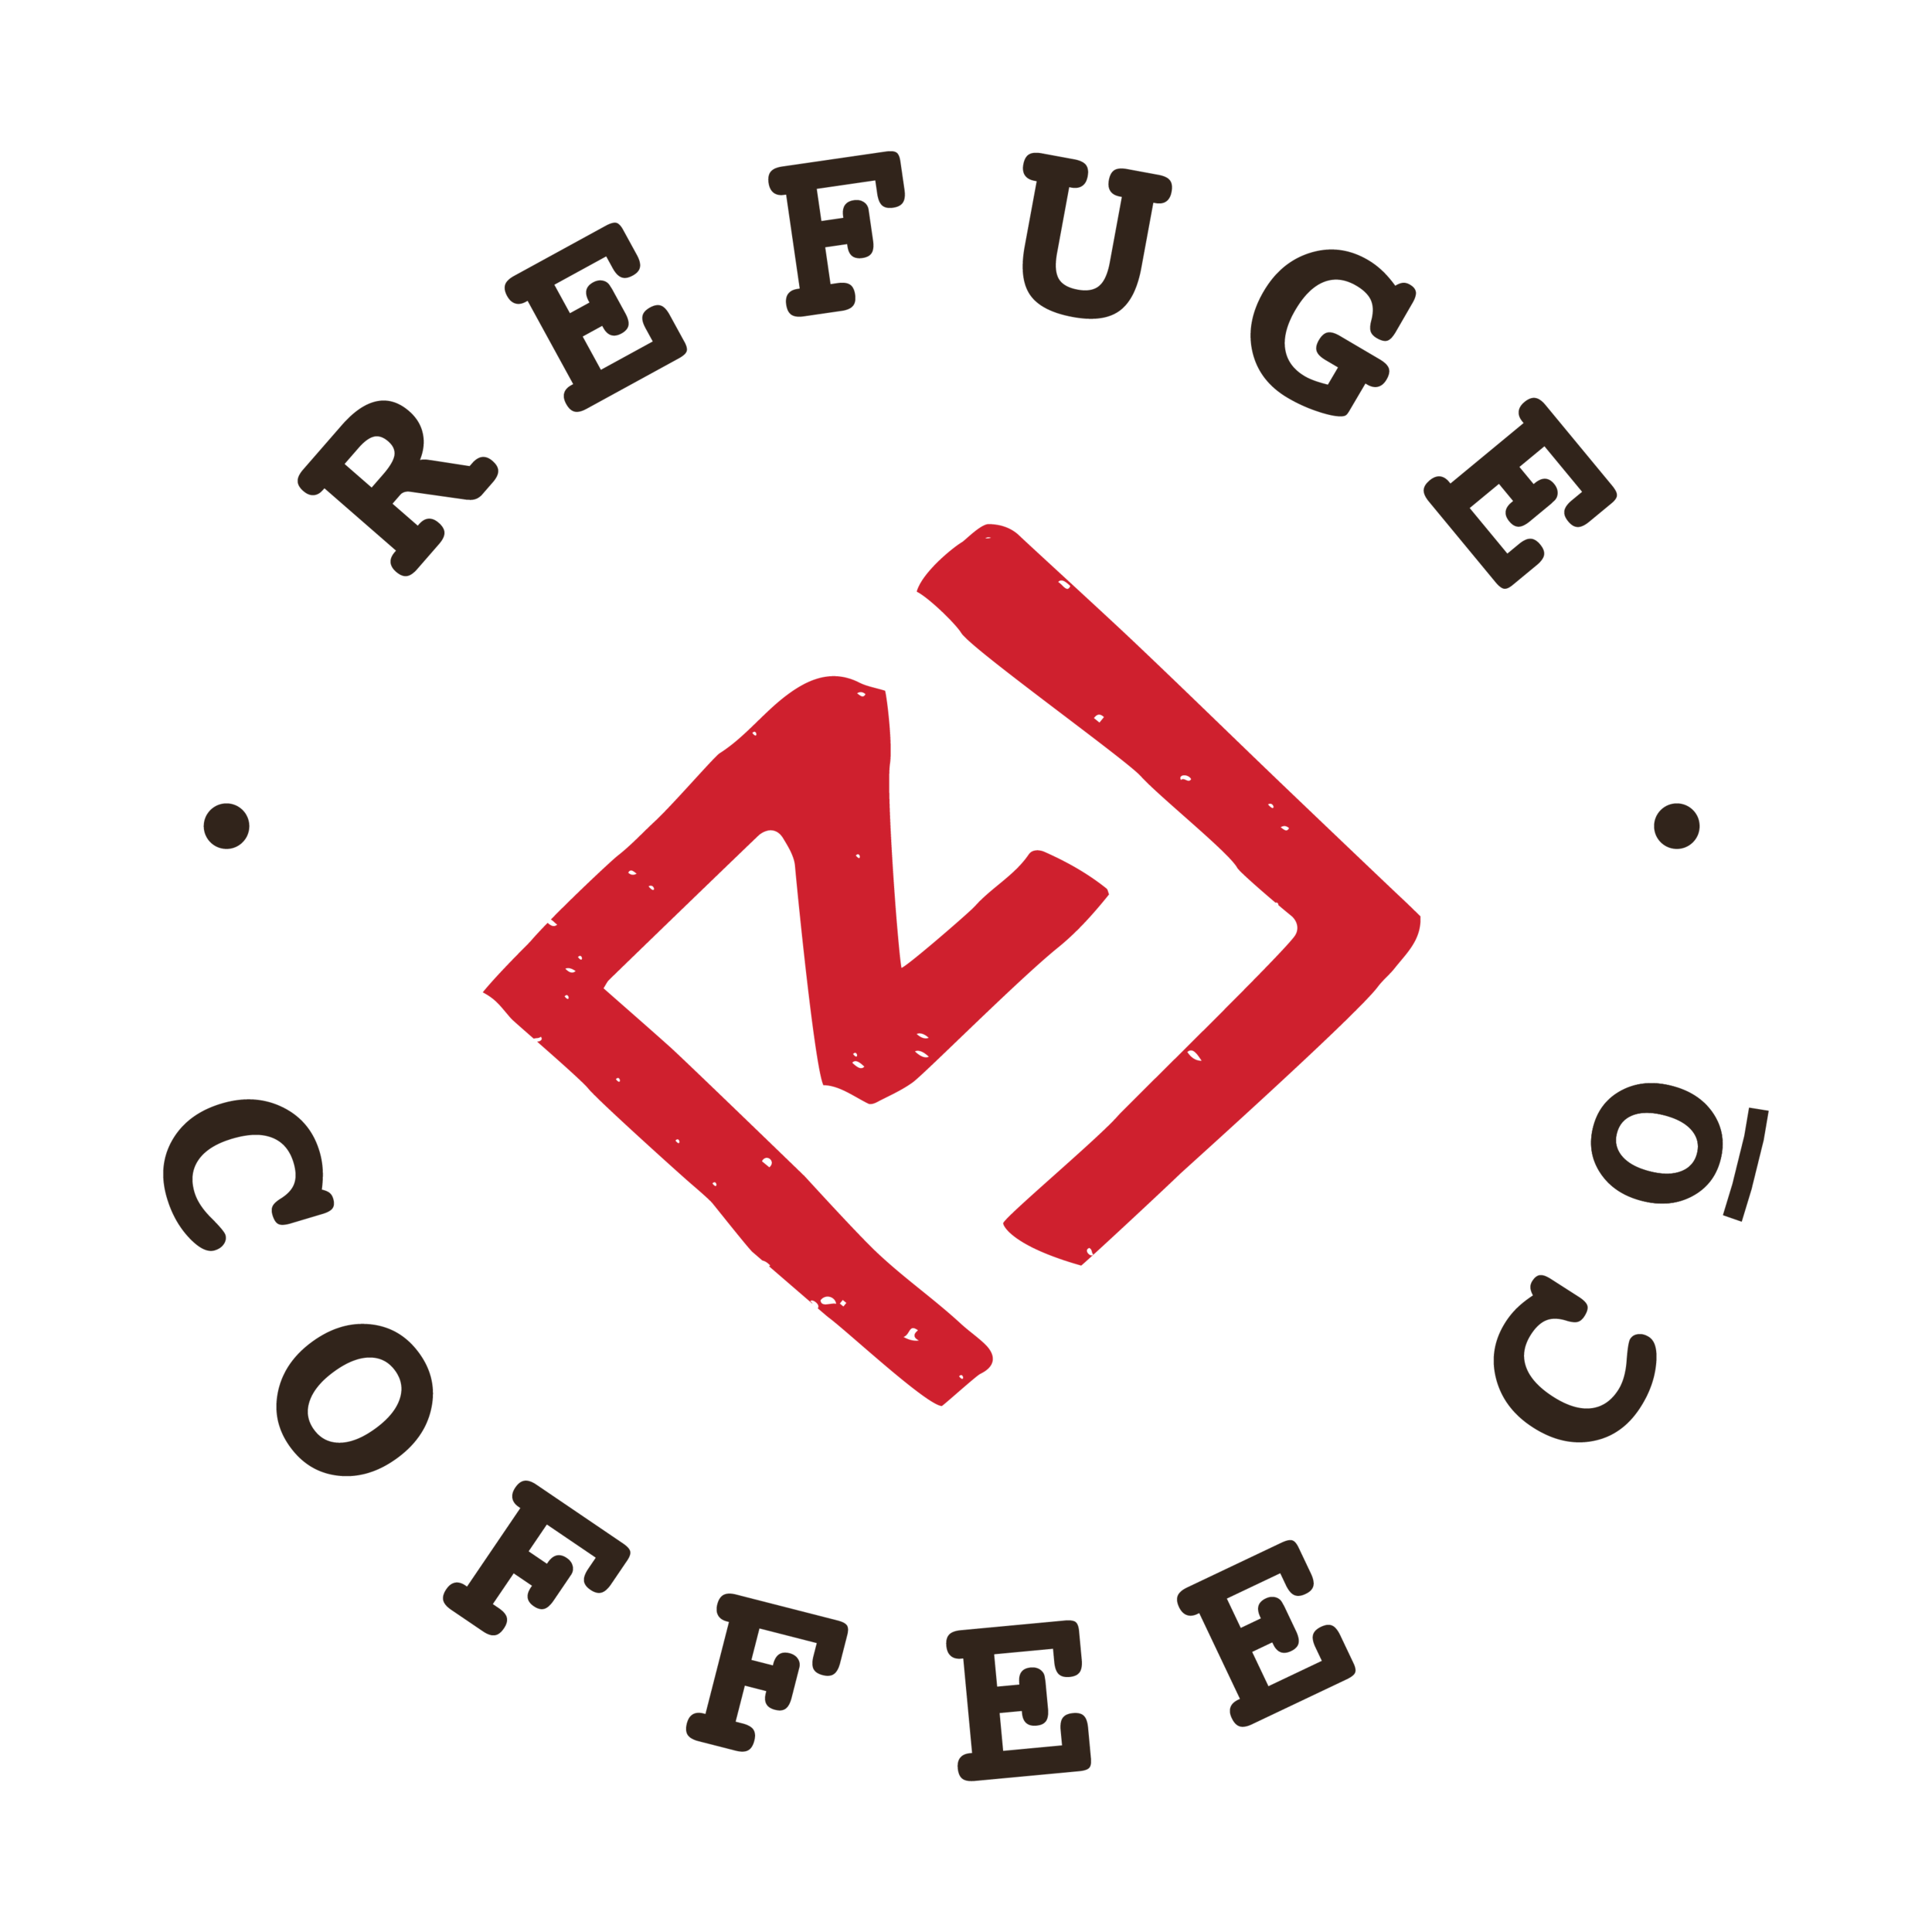 Refuge Coffee Co   Relentlessly pursuing our goal to provide employment and job-training opportunities to resettled refugees, to create a unique, welcoming gathering place in Clarkston, and to tell a more beautiful refugee story to Atlanta.   www.refugecoffeeco.com